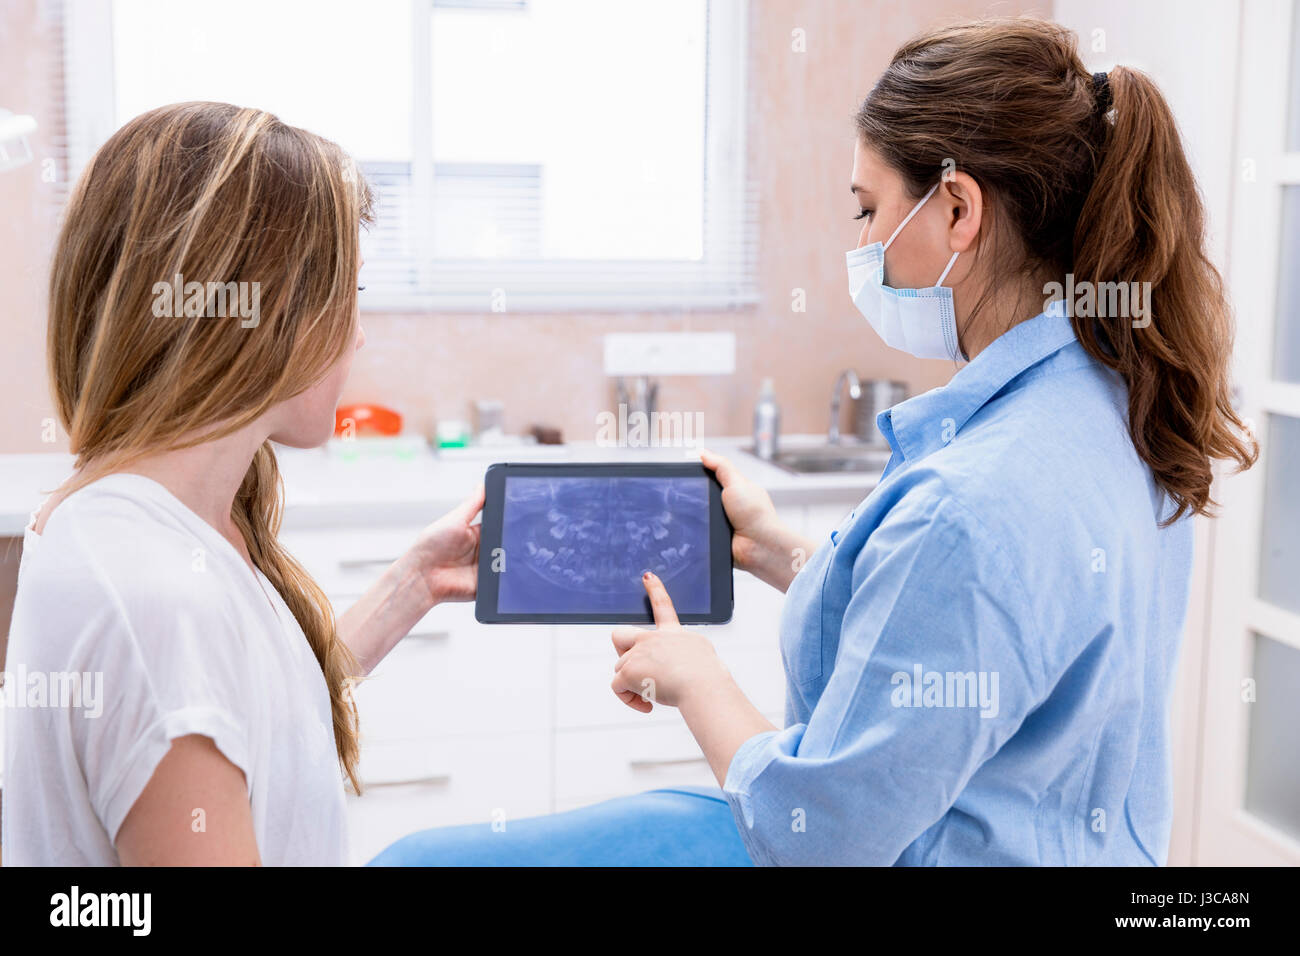 dentist showing teeht x-ray on tablet pc computer to woman patient at dental clinic office - Stock Image